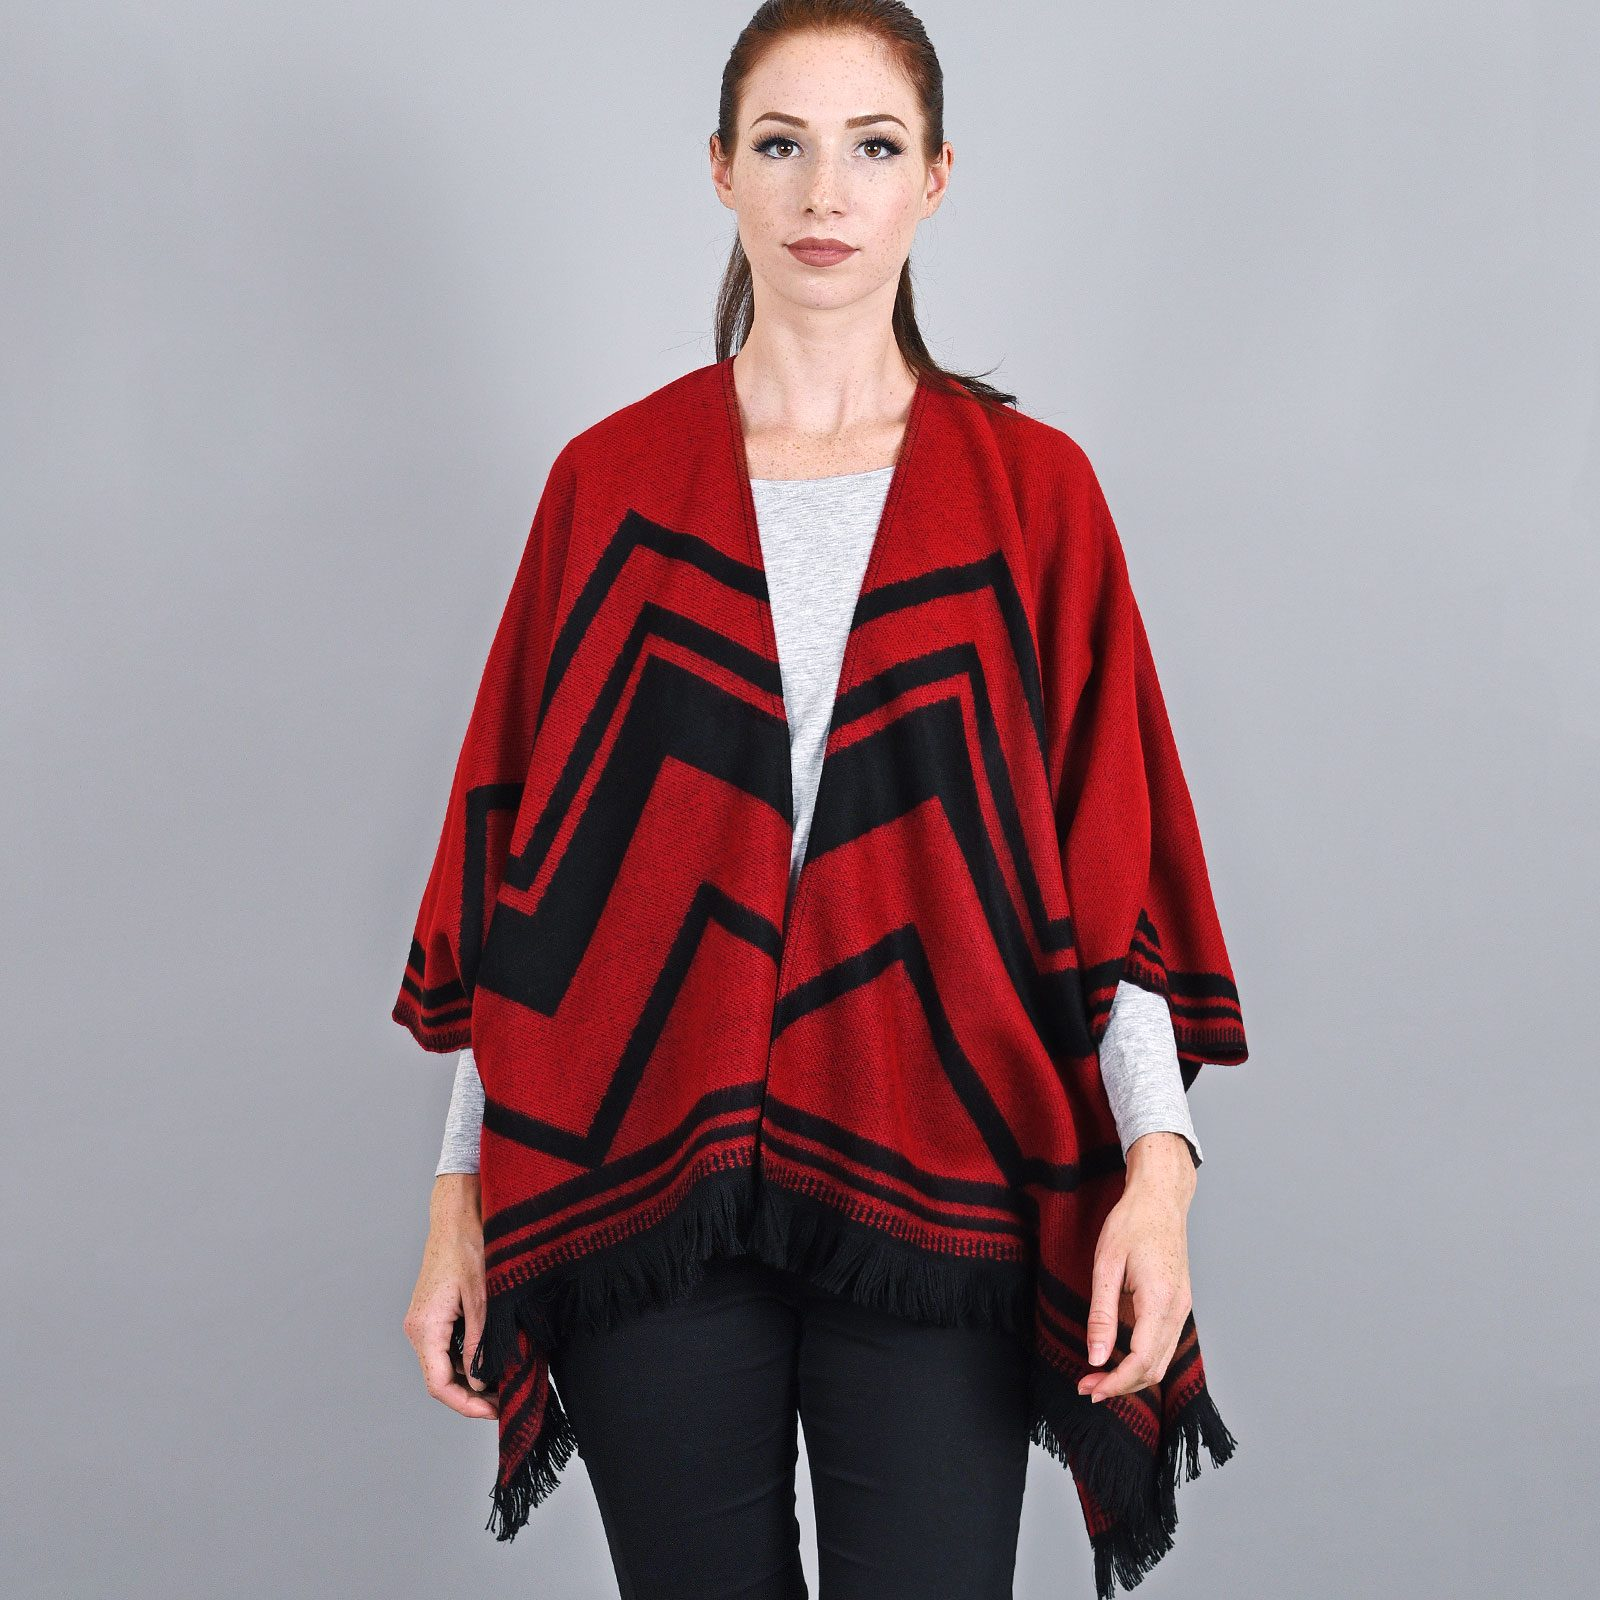 http://lookbook.allee-du-foulard.fr/wp-content/uploads/2019/01/AT-04155-VF16-poncho-femme-azteque-rouge-1600x1600.jpg